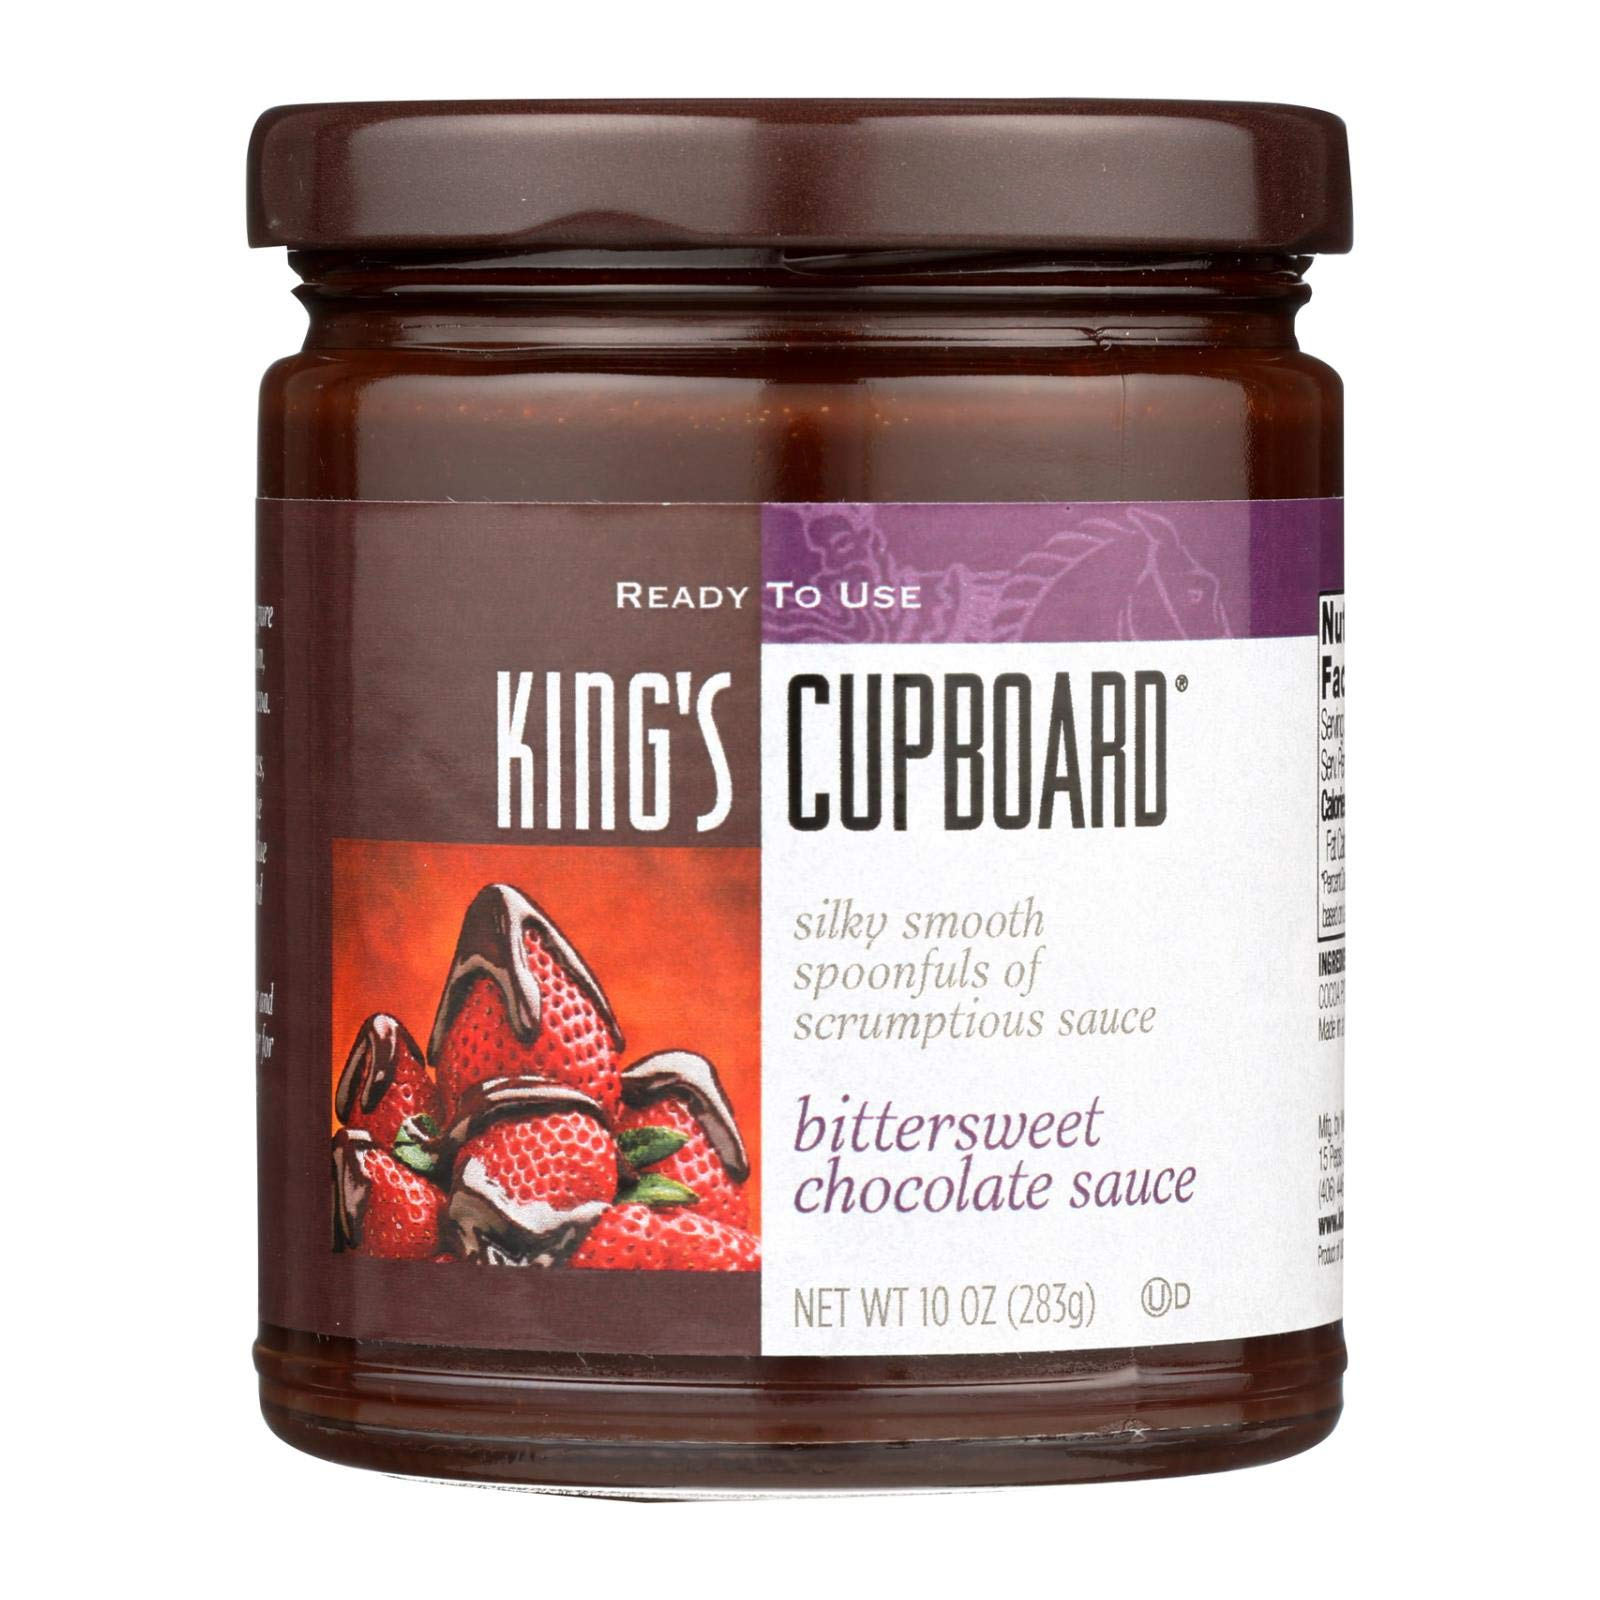 KINGS CUPBOARD Bittersweet Chocolate Sauce, 10 OZ by The King's Cupboard (Image #1)